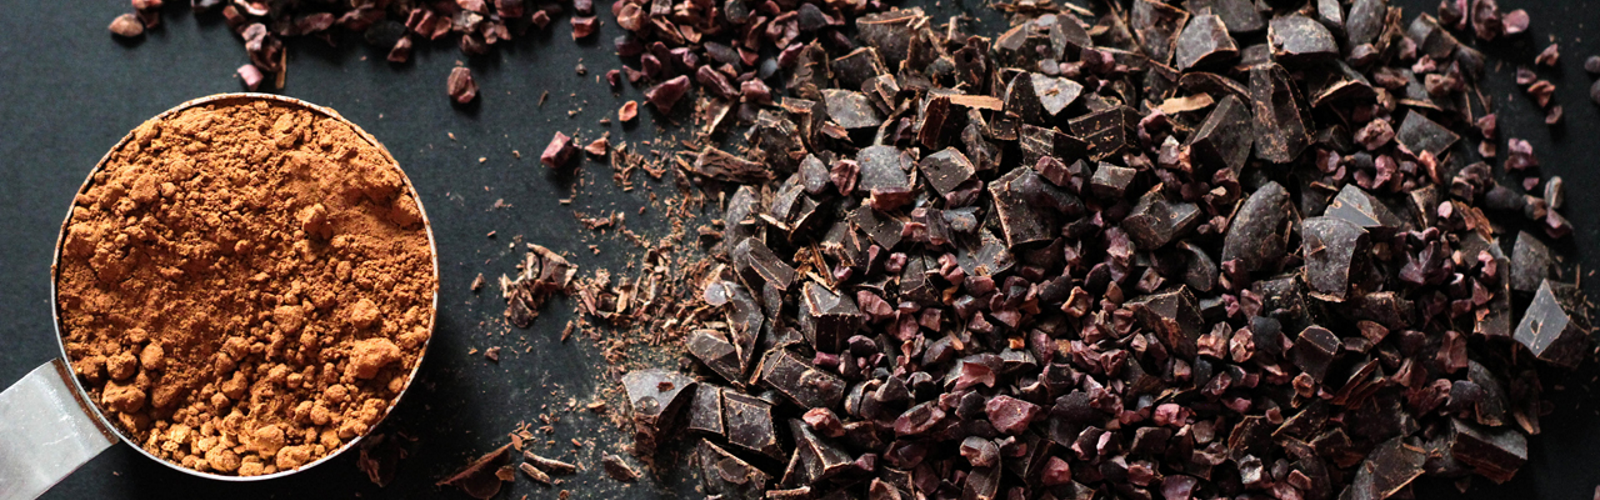 Benefits of Cacao and Raw Cacao Nibs